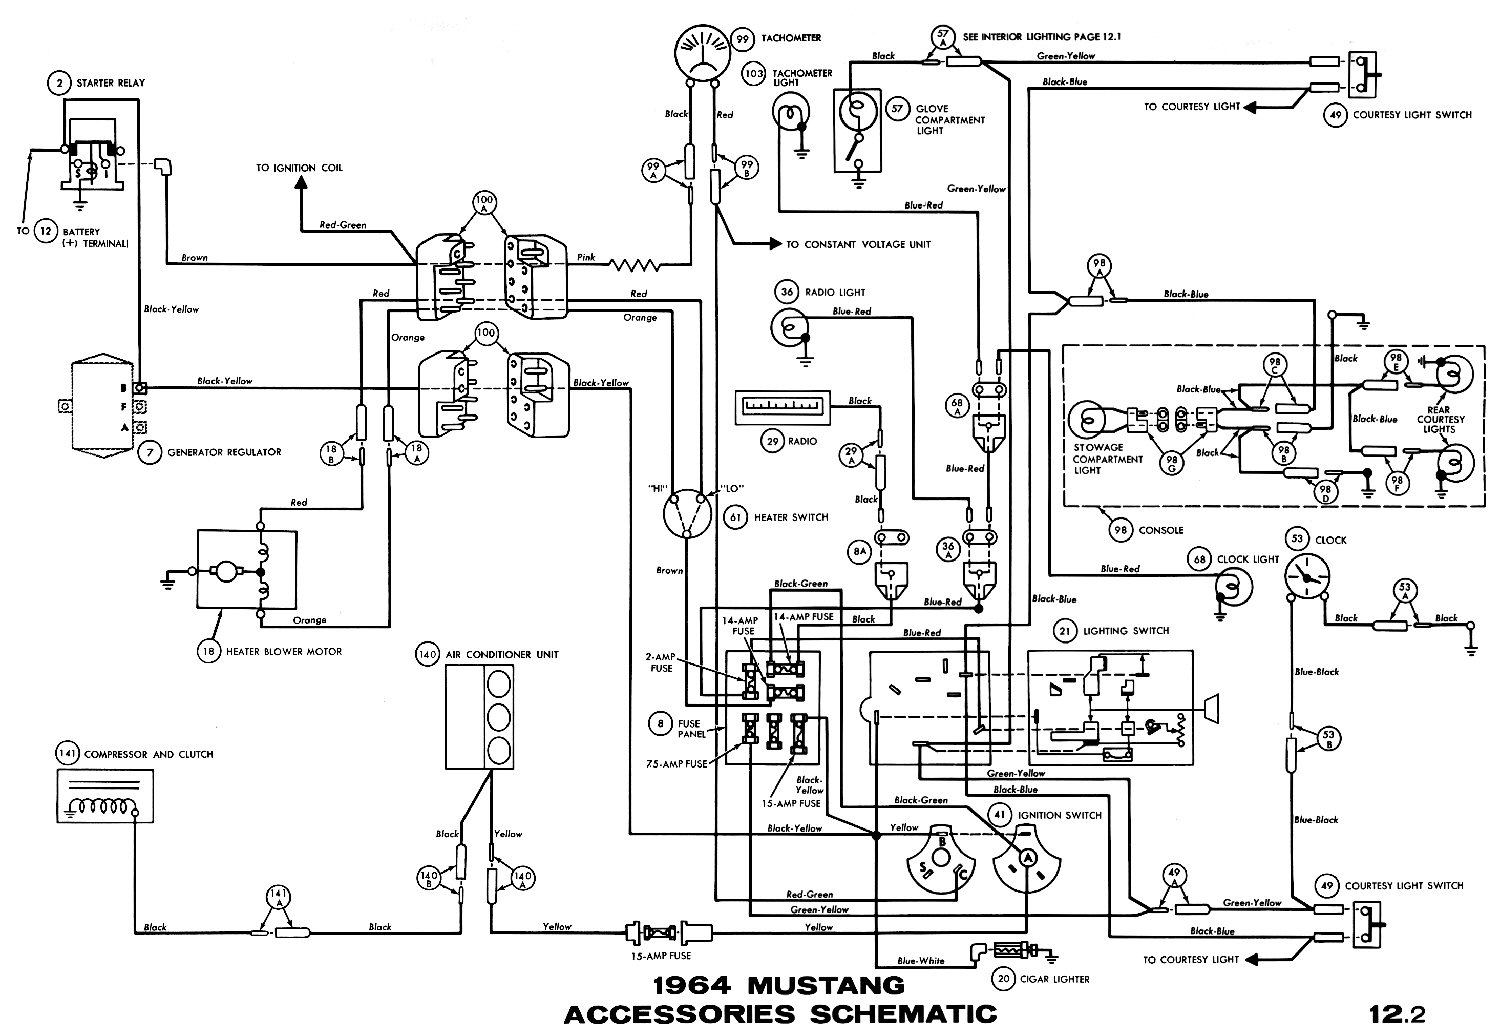 1964m 1964 mustang wiring diagrams average joe restoration 2015 mustang speaker wiring diagram at reclaimingppi.co